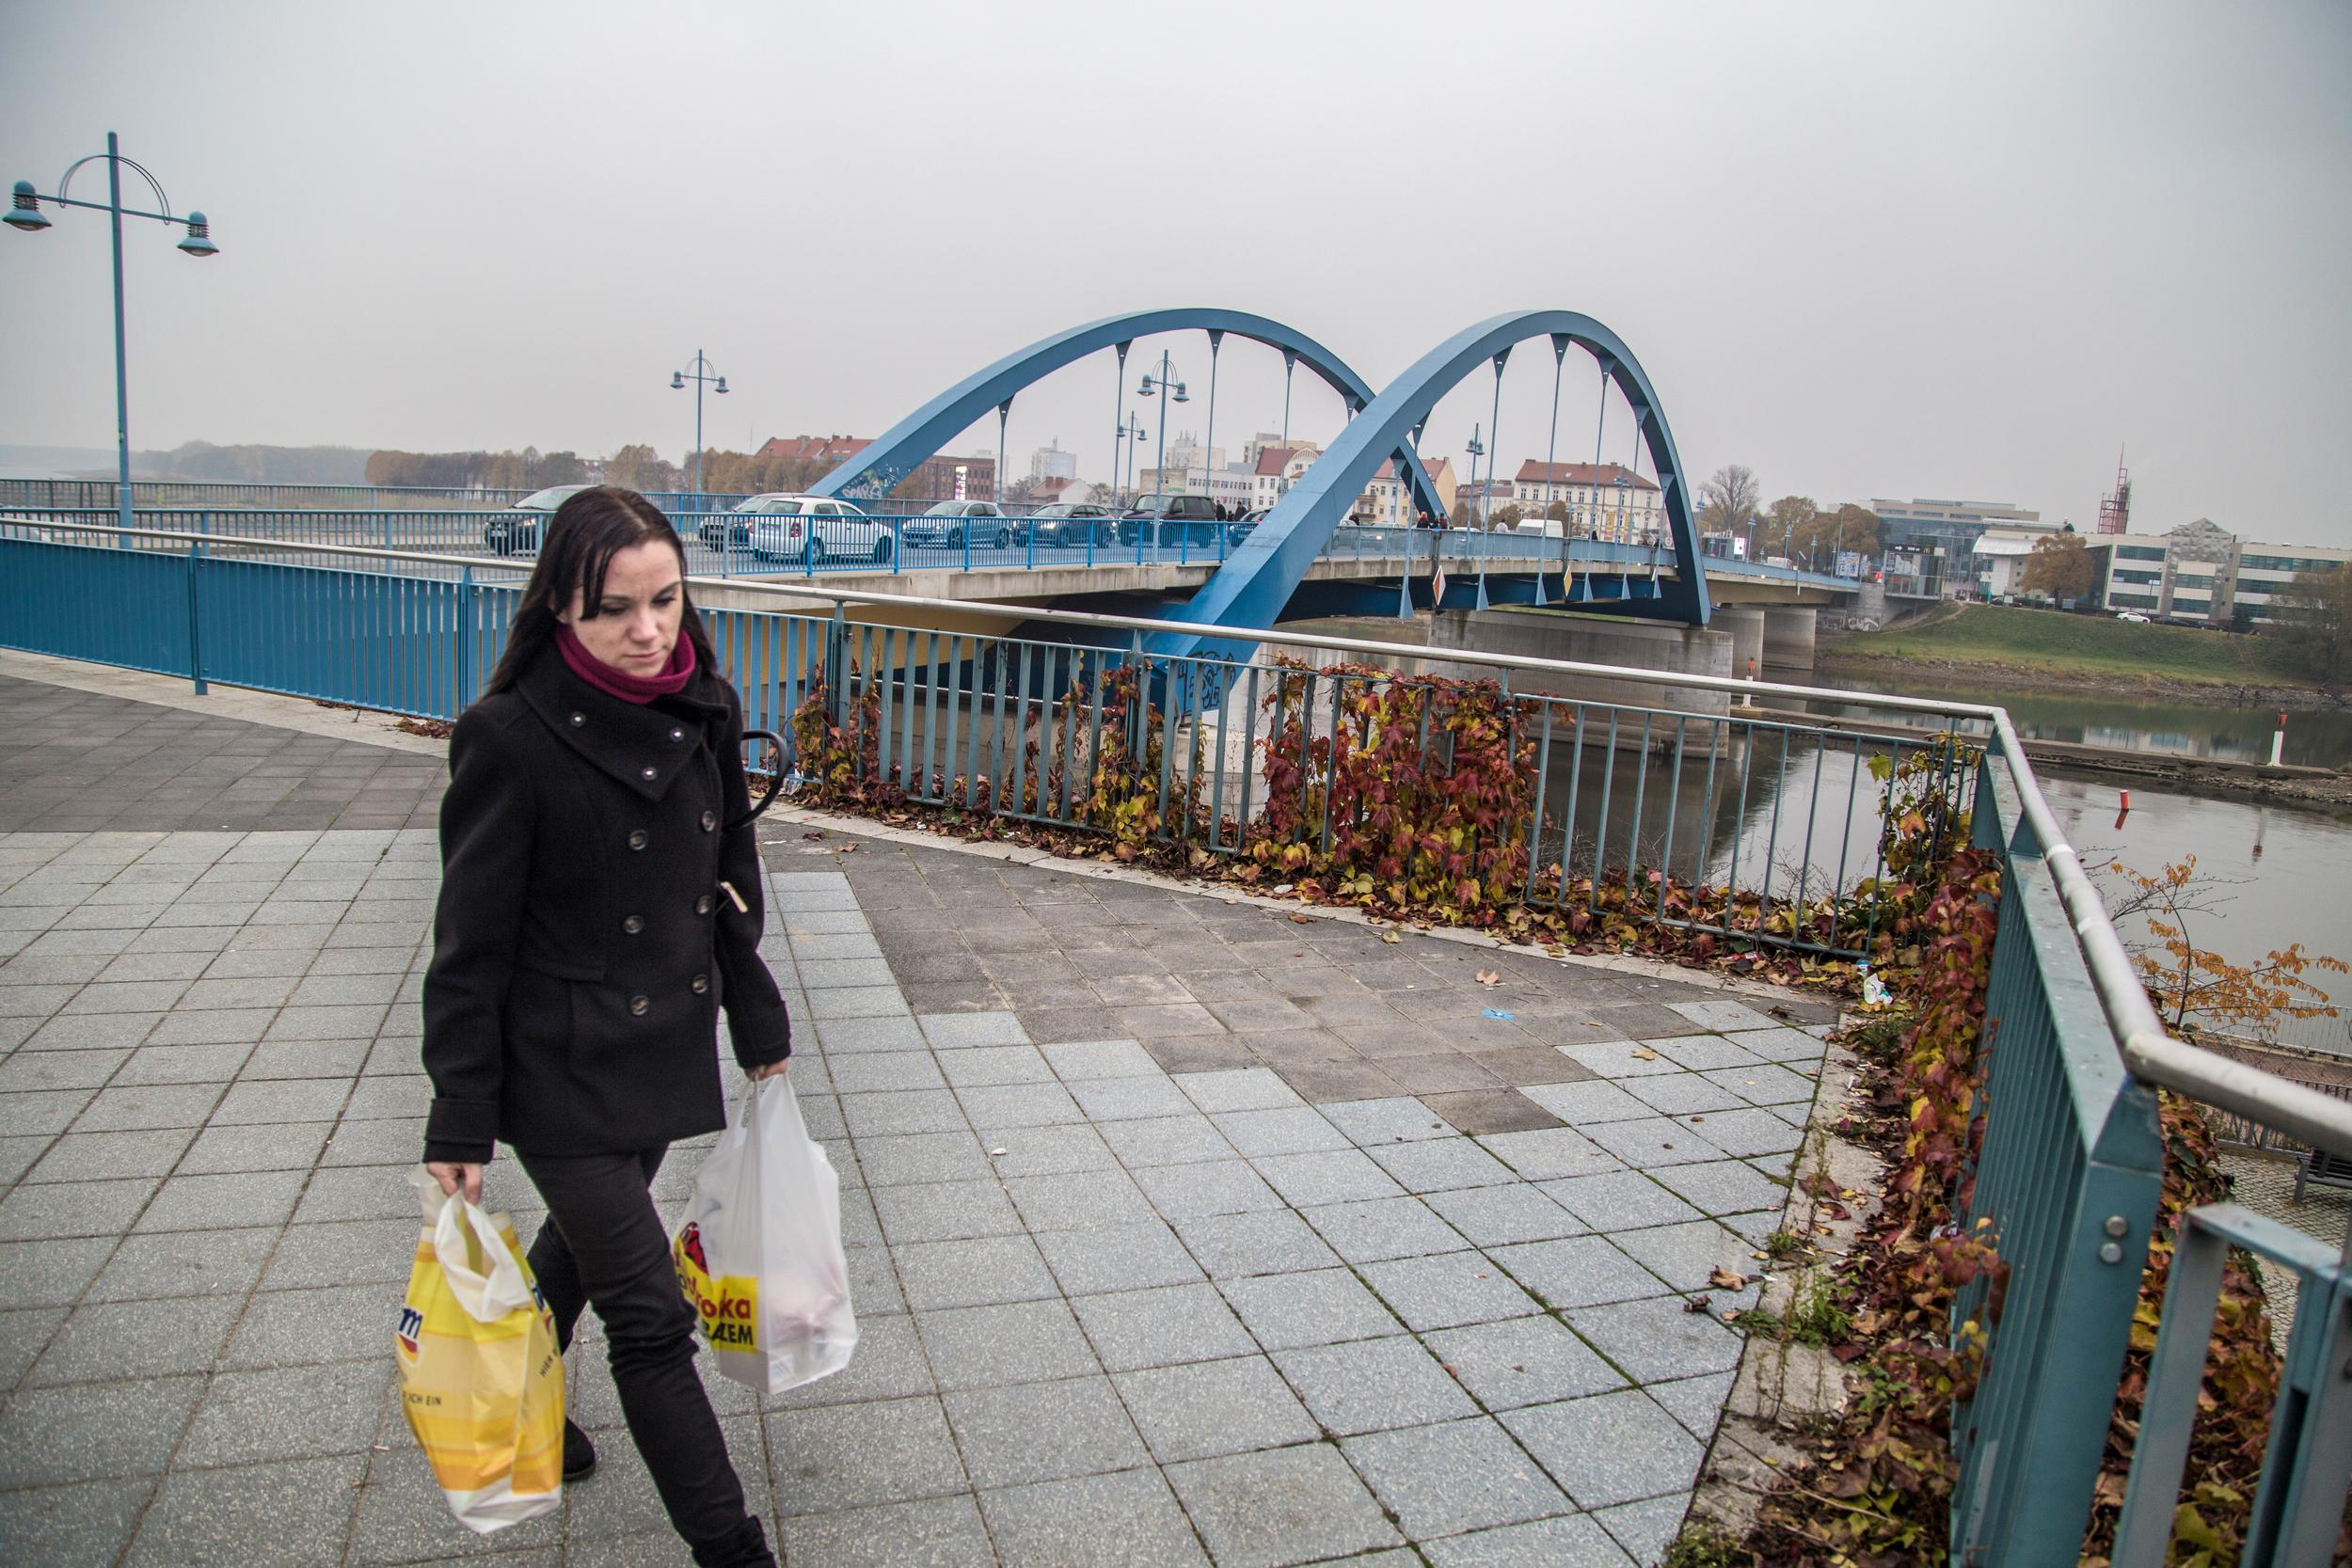 A woman returns to Germany after a shopping trip in Poland's Slubice.